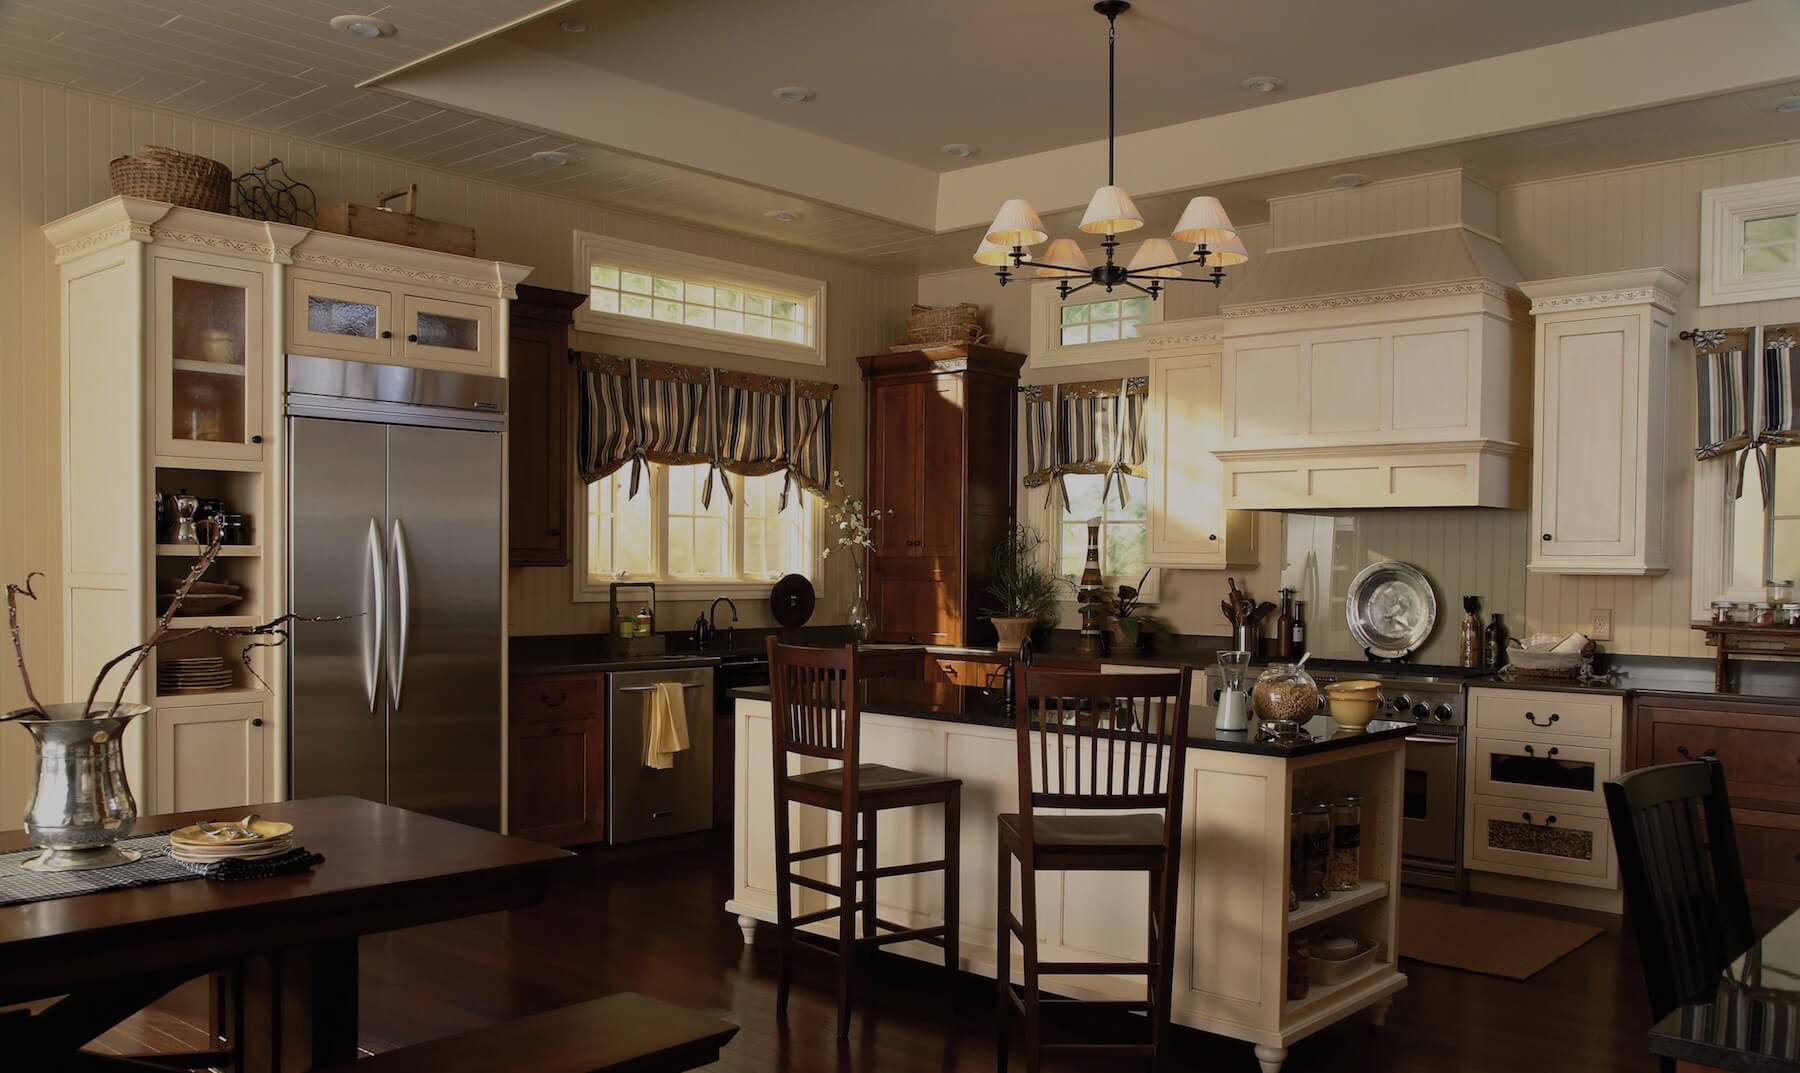 Chris-Crawford-Construction-Alameda-Medallion-Cabinetry-1